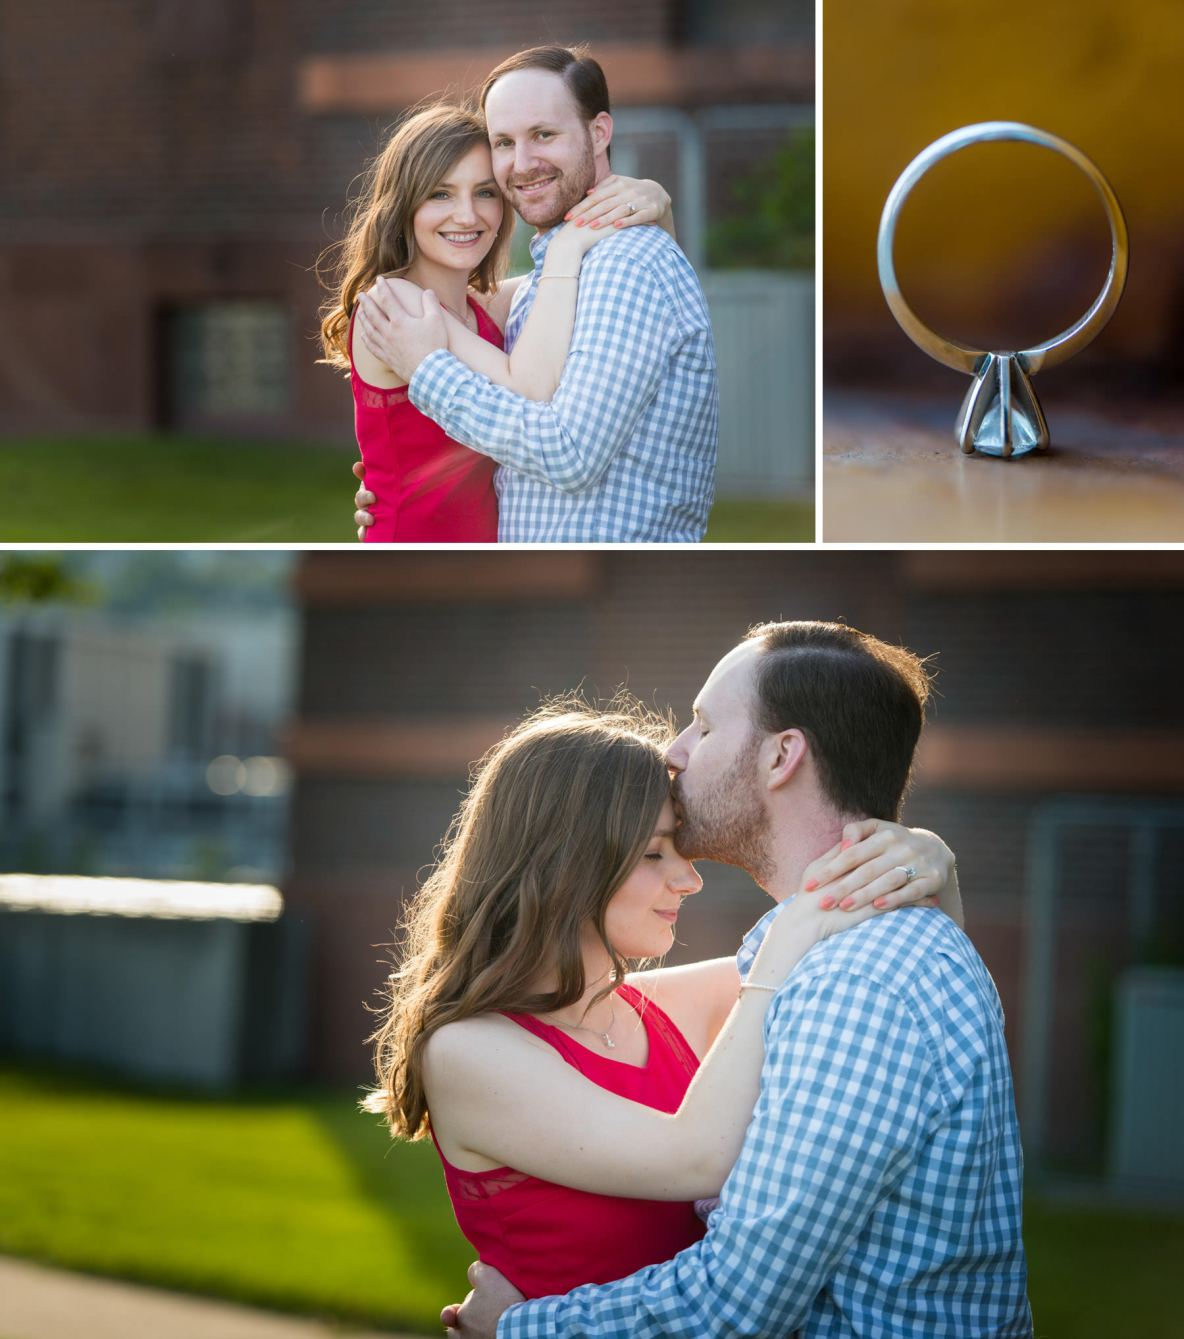 Canal Park and Hartley Park Duluth Engagement Pics - Bryan Jonathan Weddings